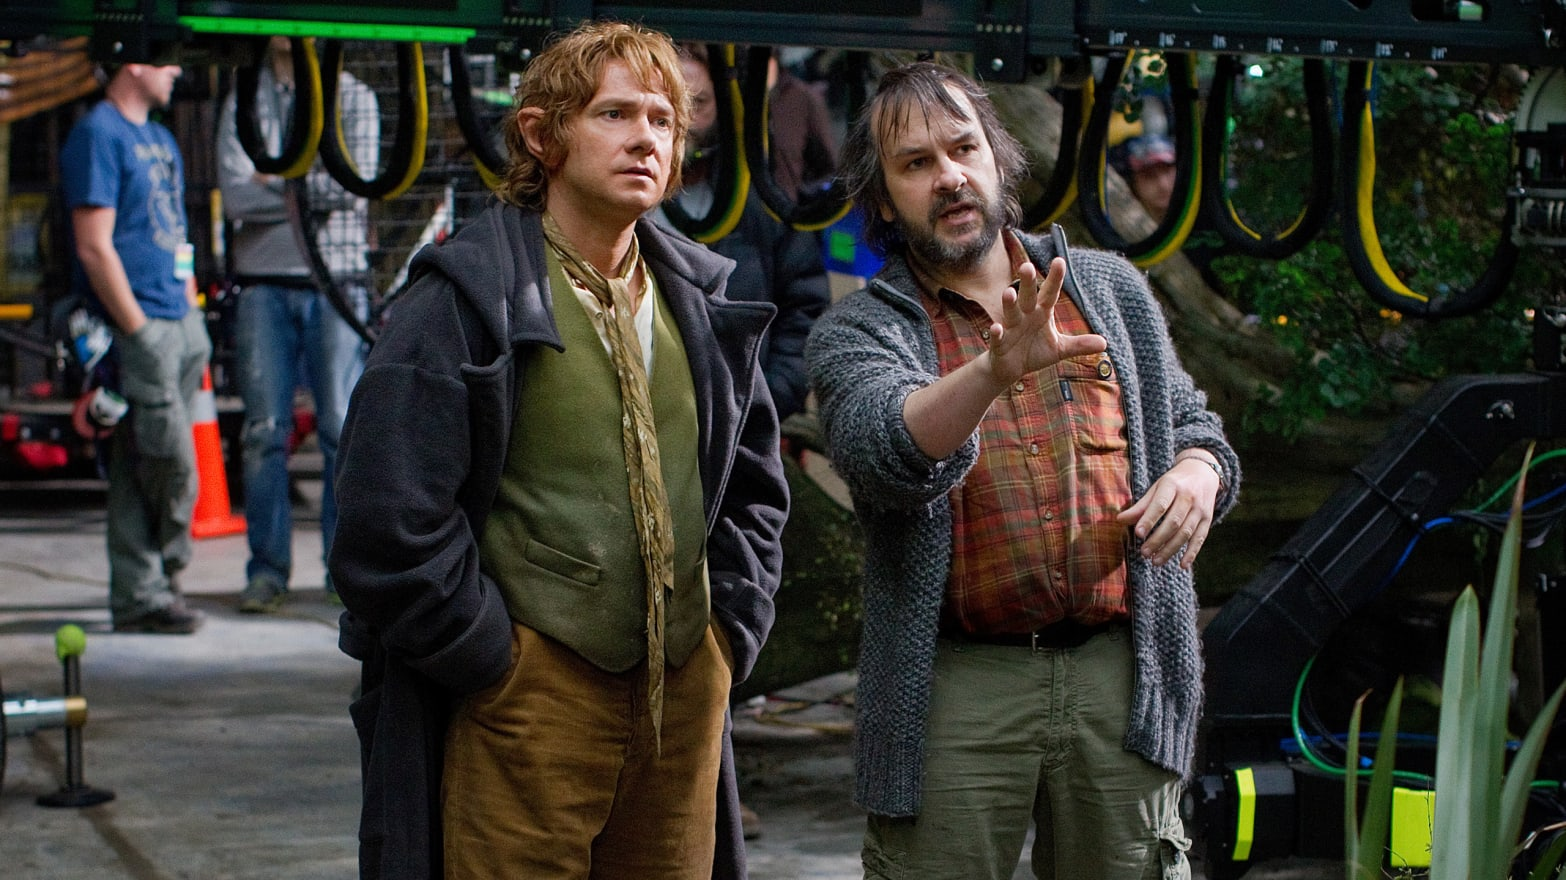 The Curse of 'The Hobbit': Dying Animal, Fires, Actors